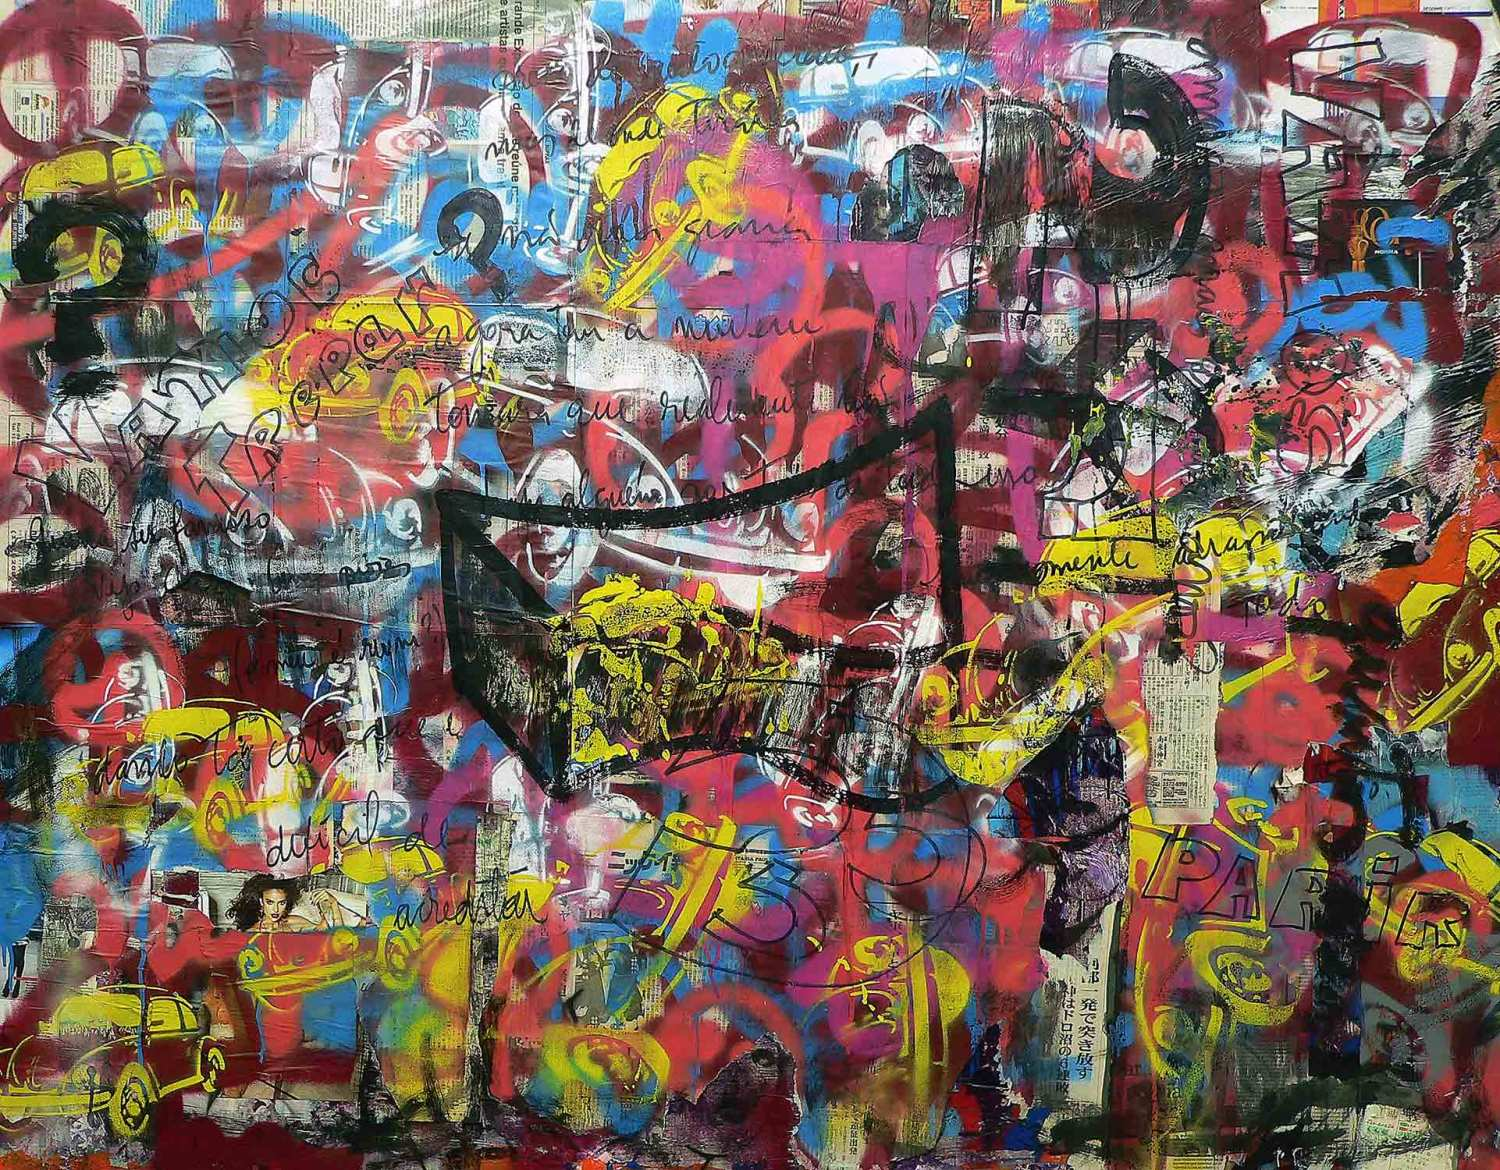 vamos trepar? - 145 x 203 cm - spray paint, markers and collage on canvas - 2010